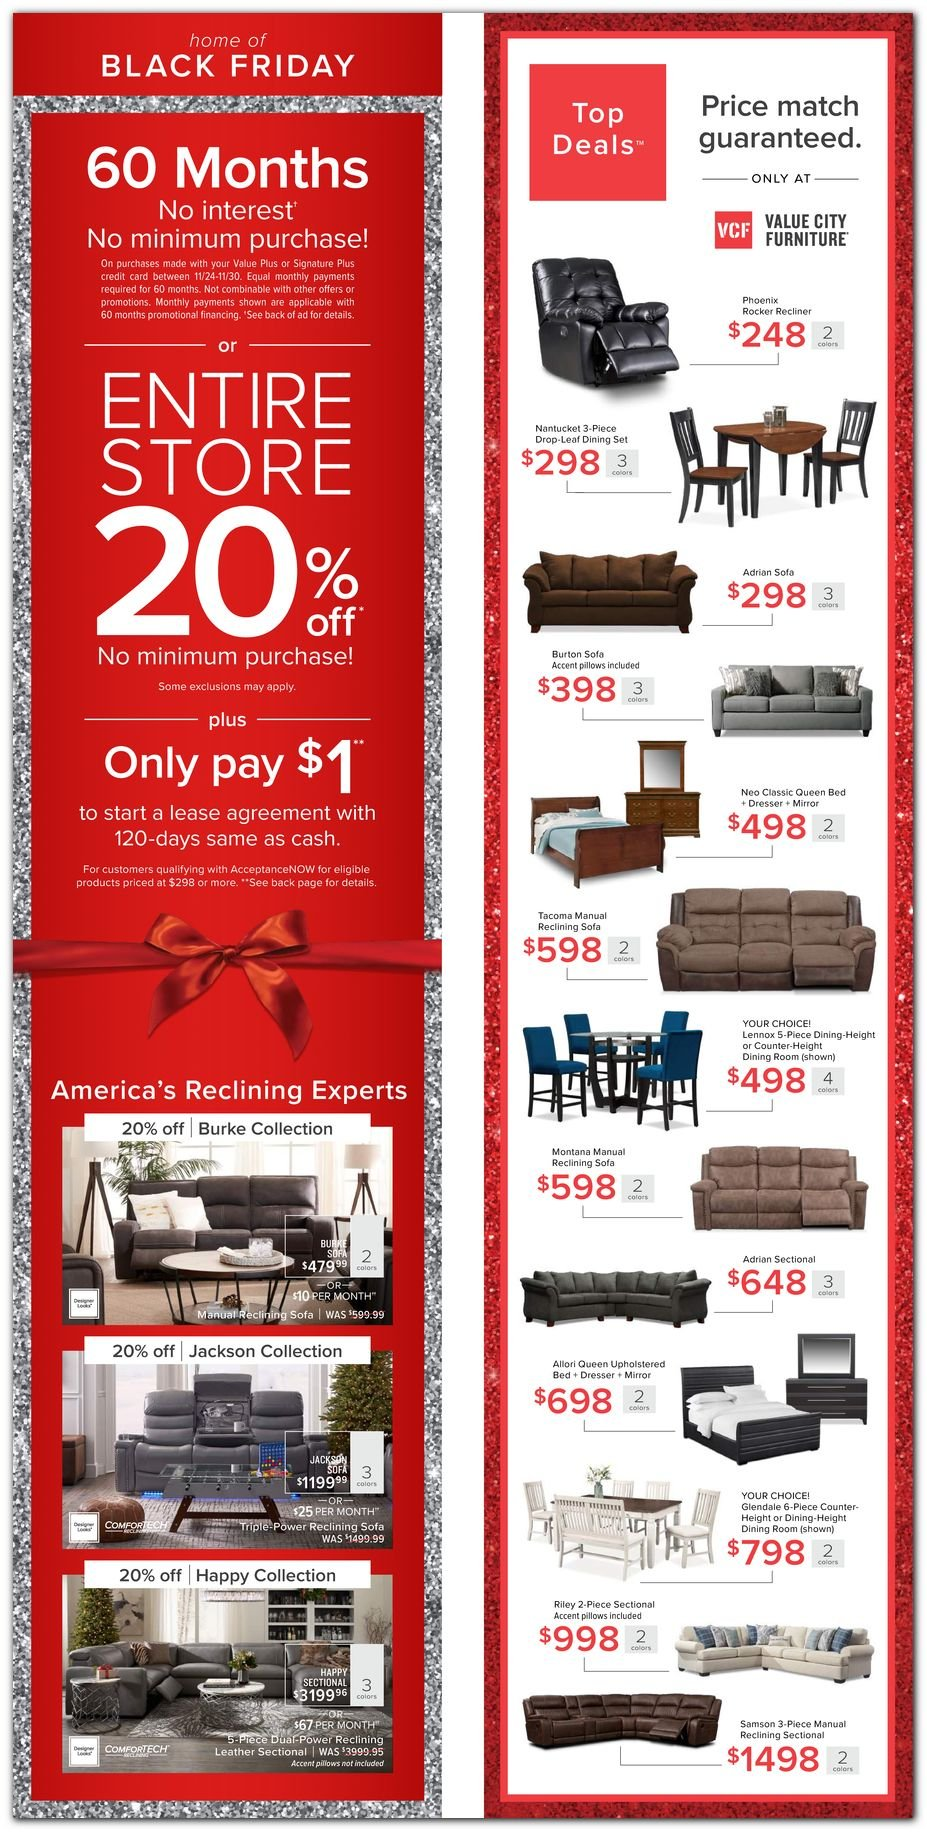 Value City Furniture Black Friday 2020 Page 6